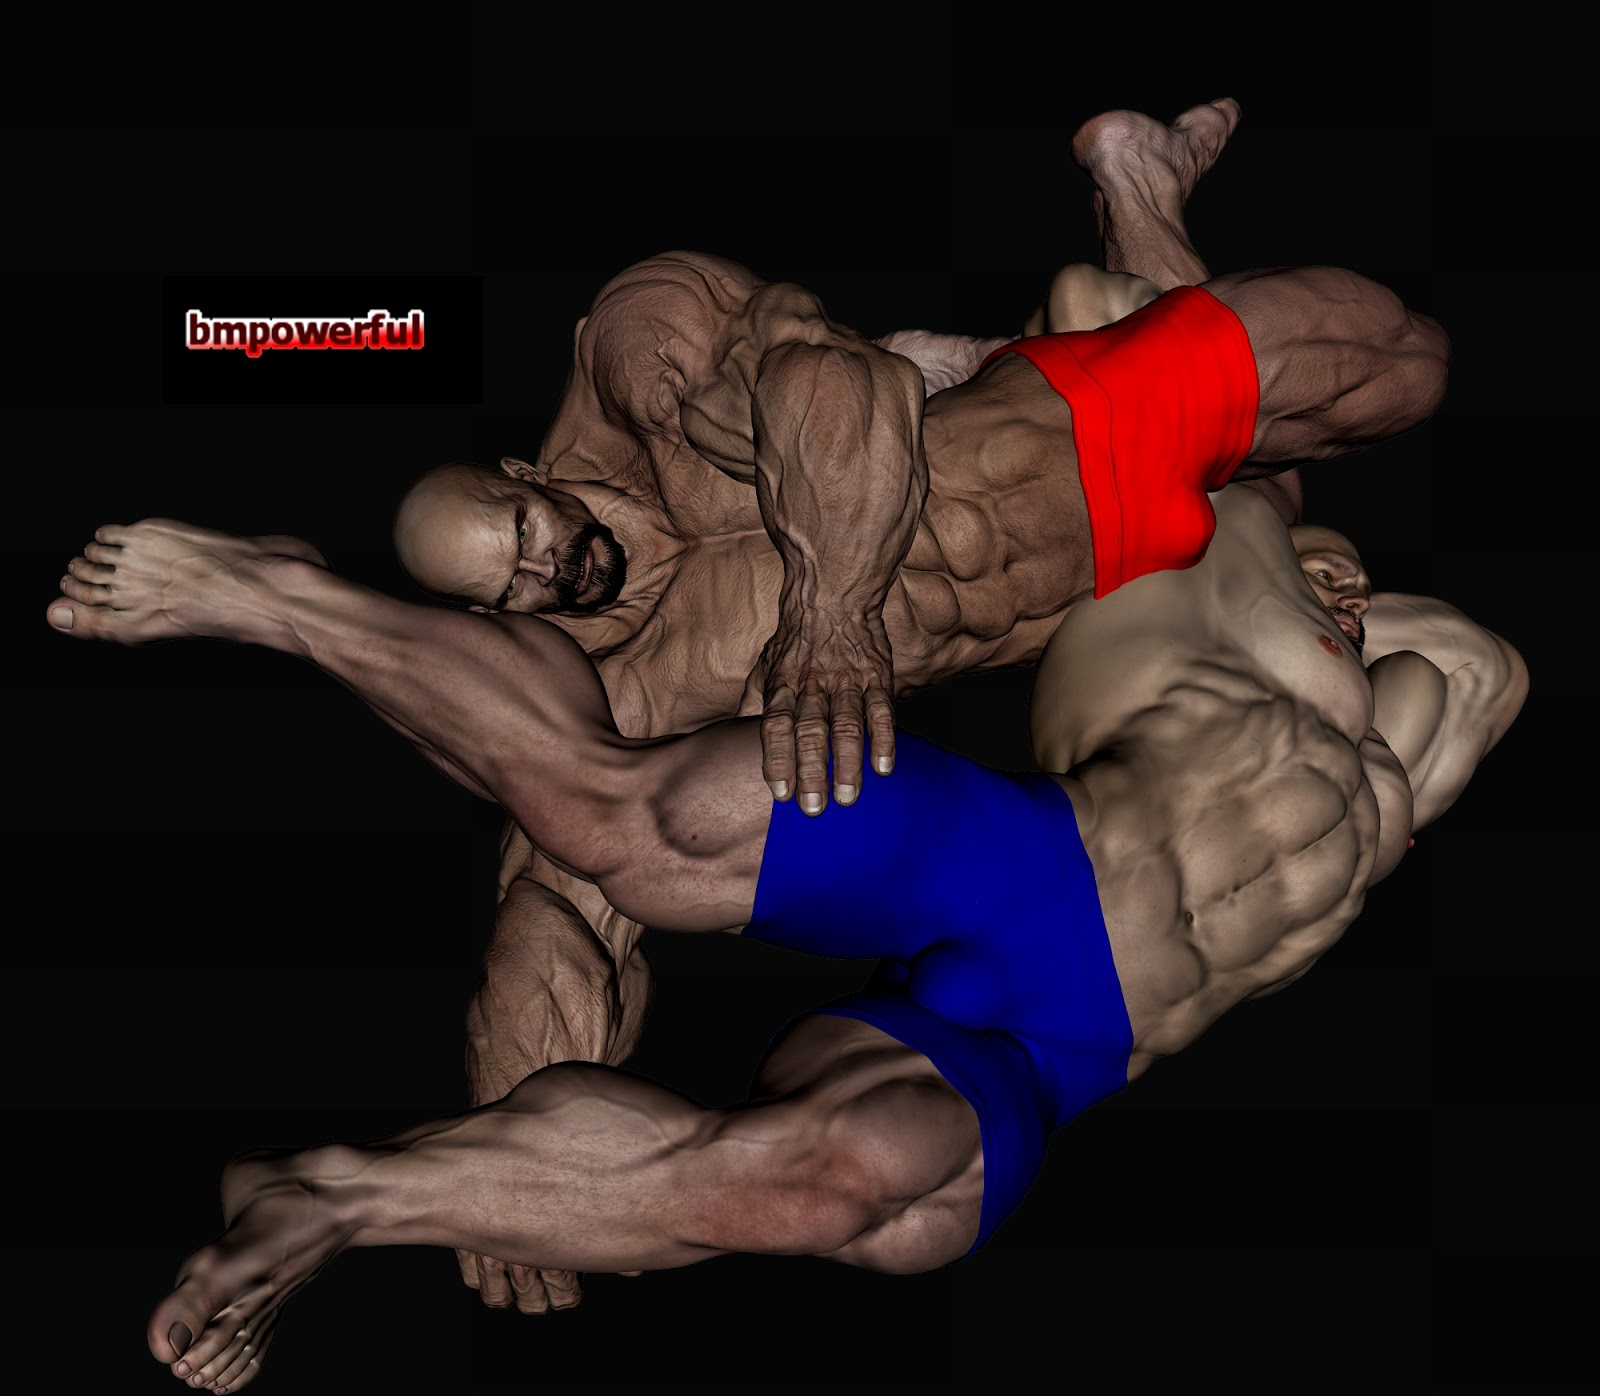 bodybuilder wrestling gay